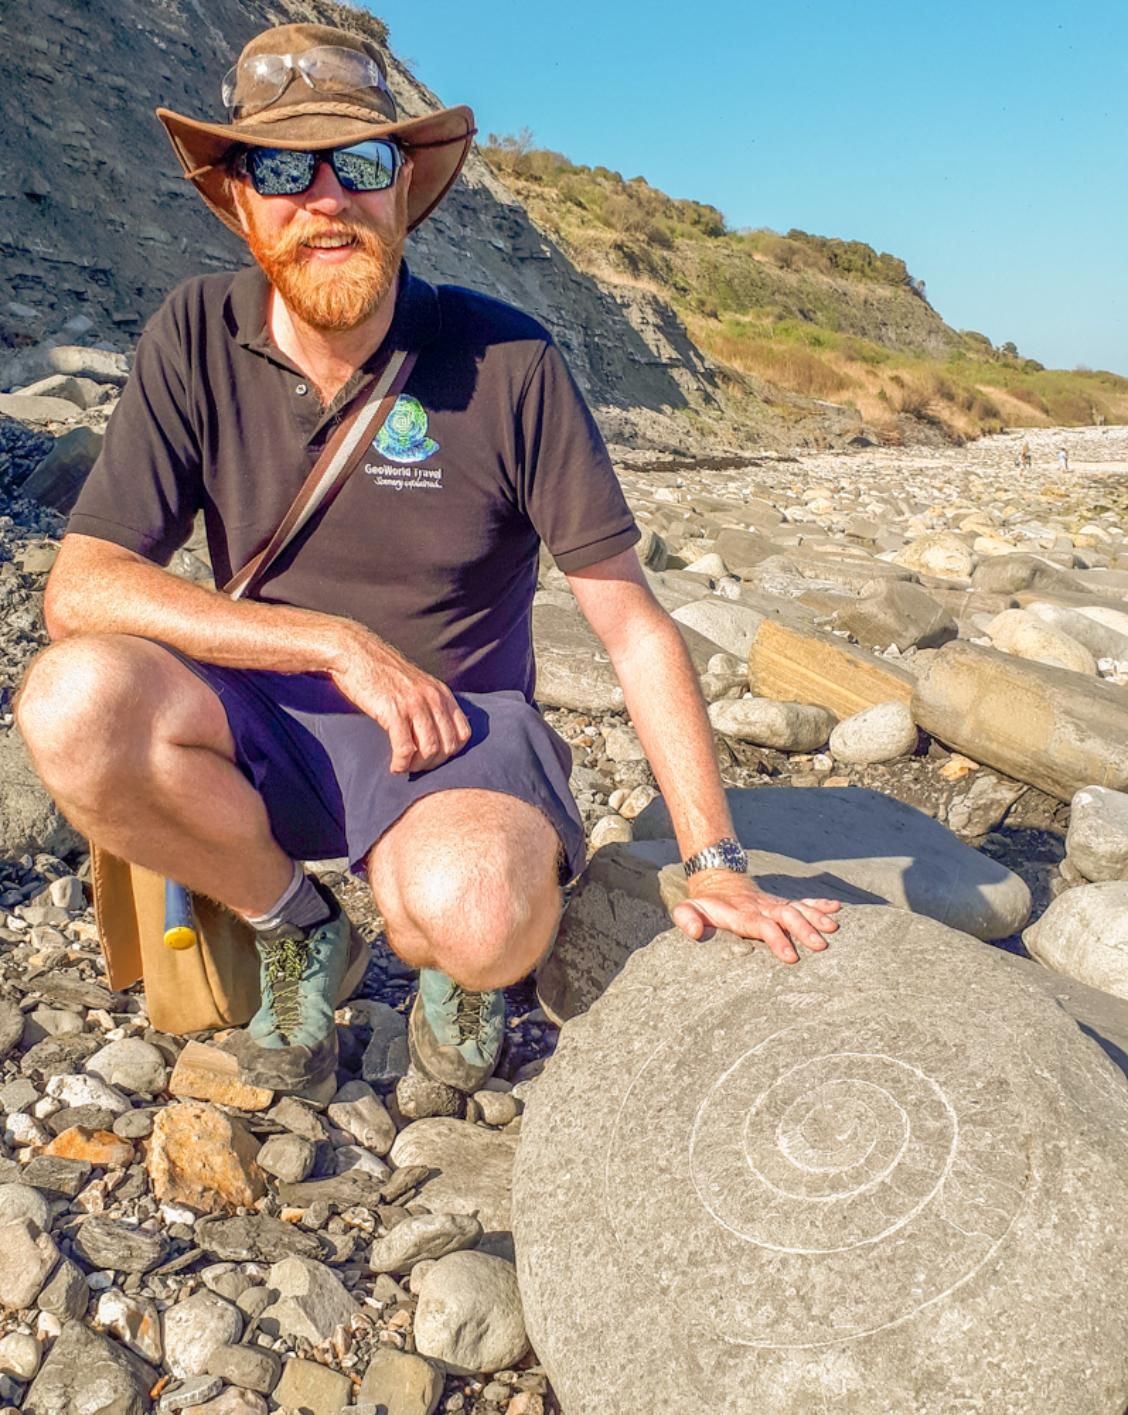 A photograph of James Cresswell with an ammonite fossil on Jurassic Coast at Lyme Regis